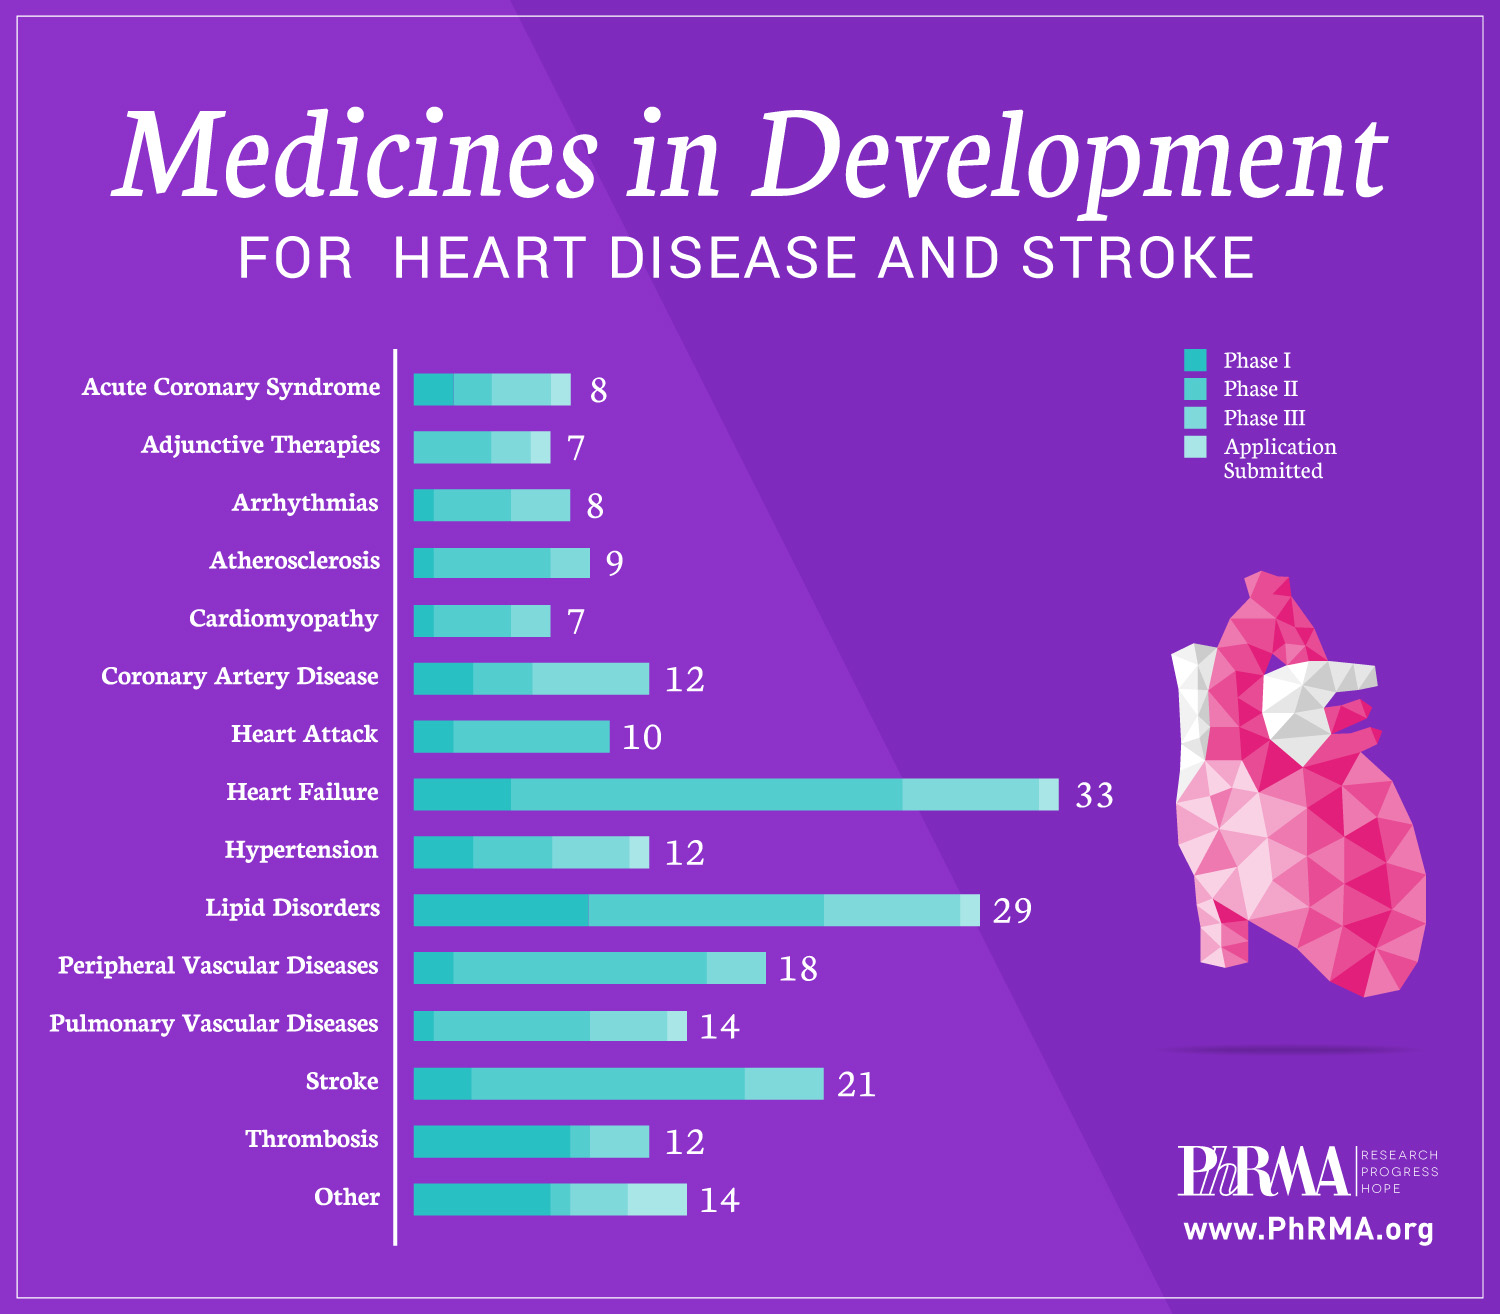 Medicines in Development for Heart Disease and Stroke